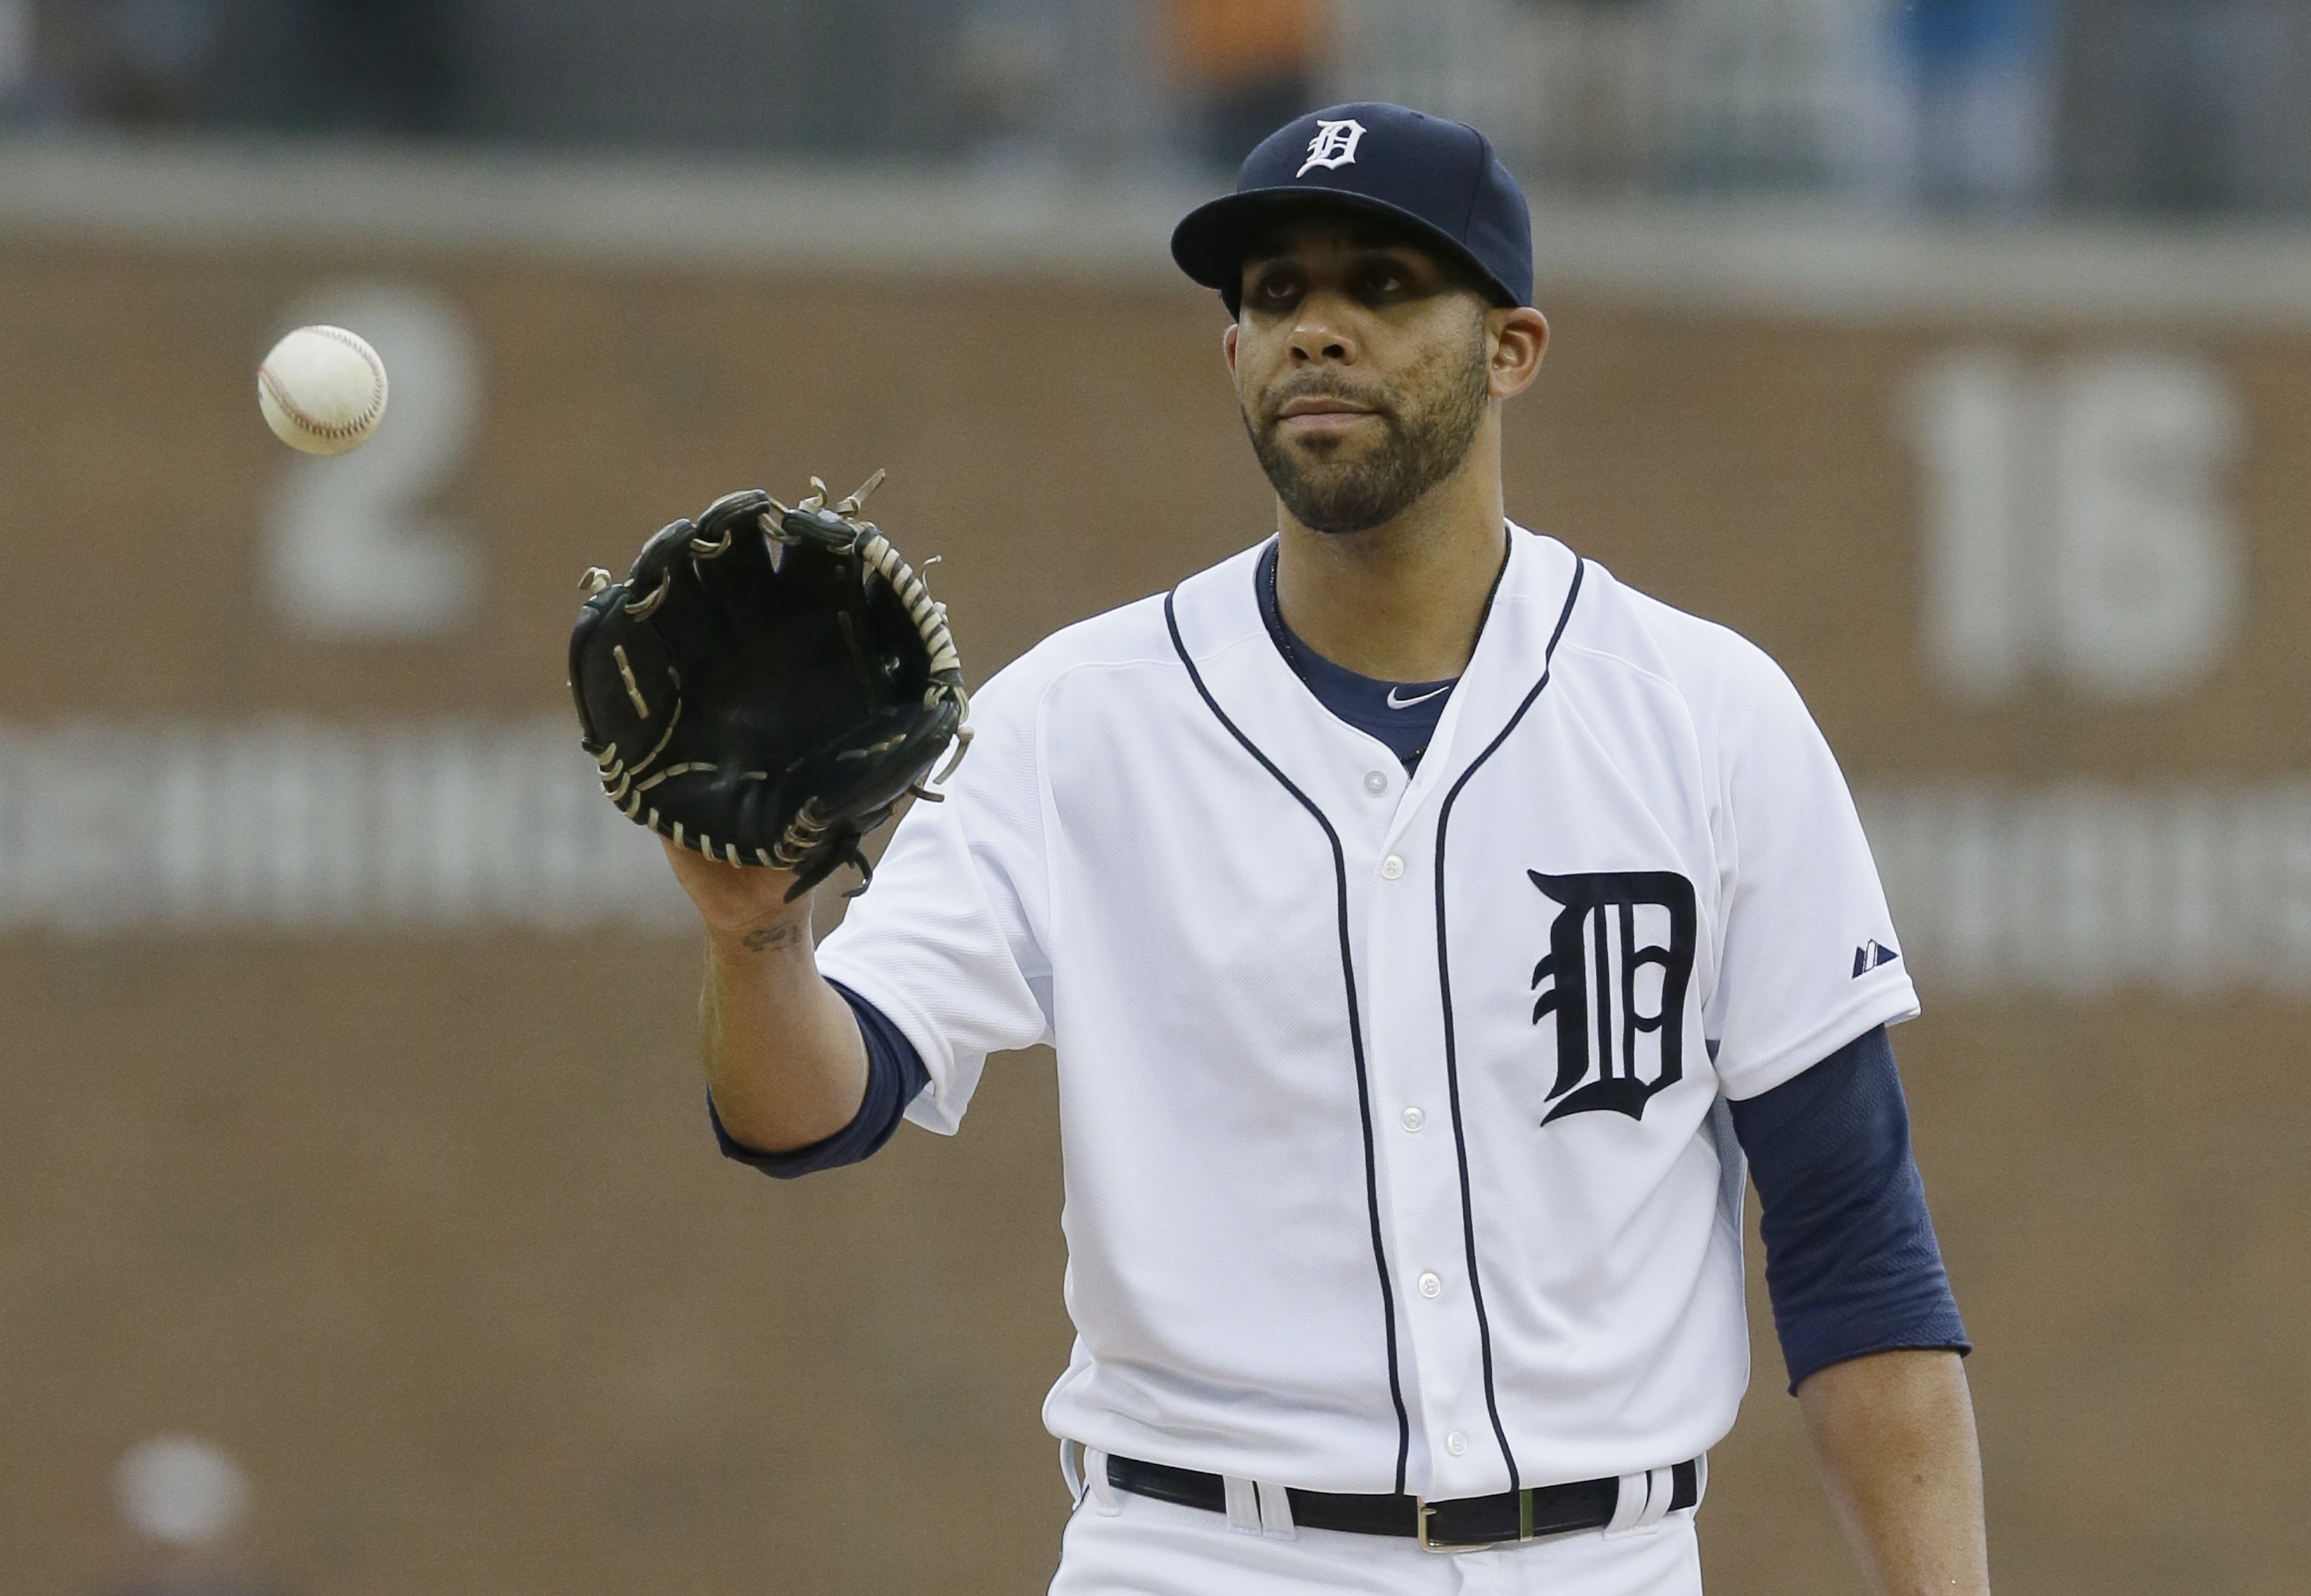 David Price gets a flat tire on his way to Toronto